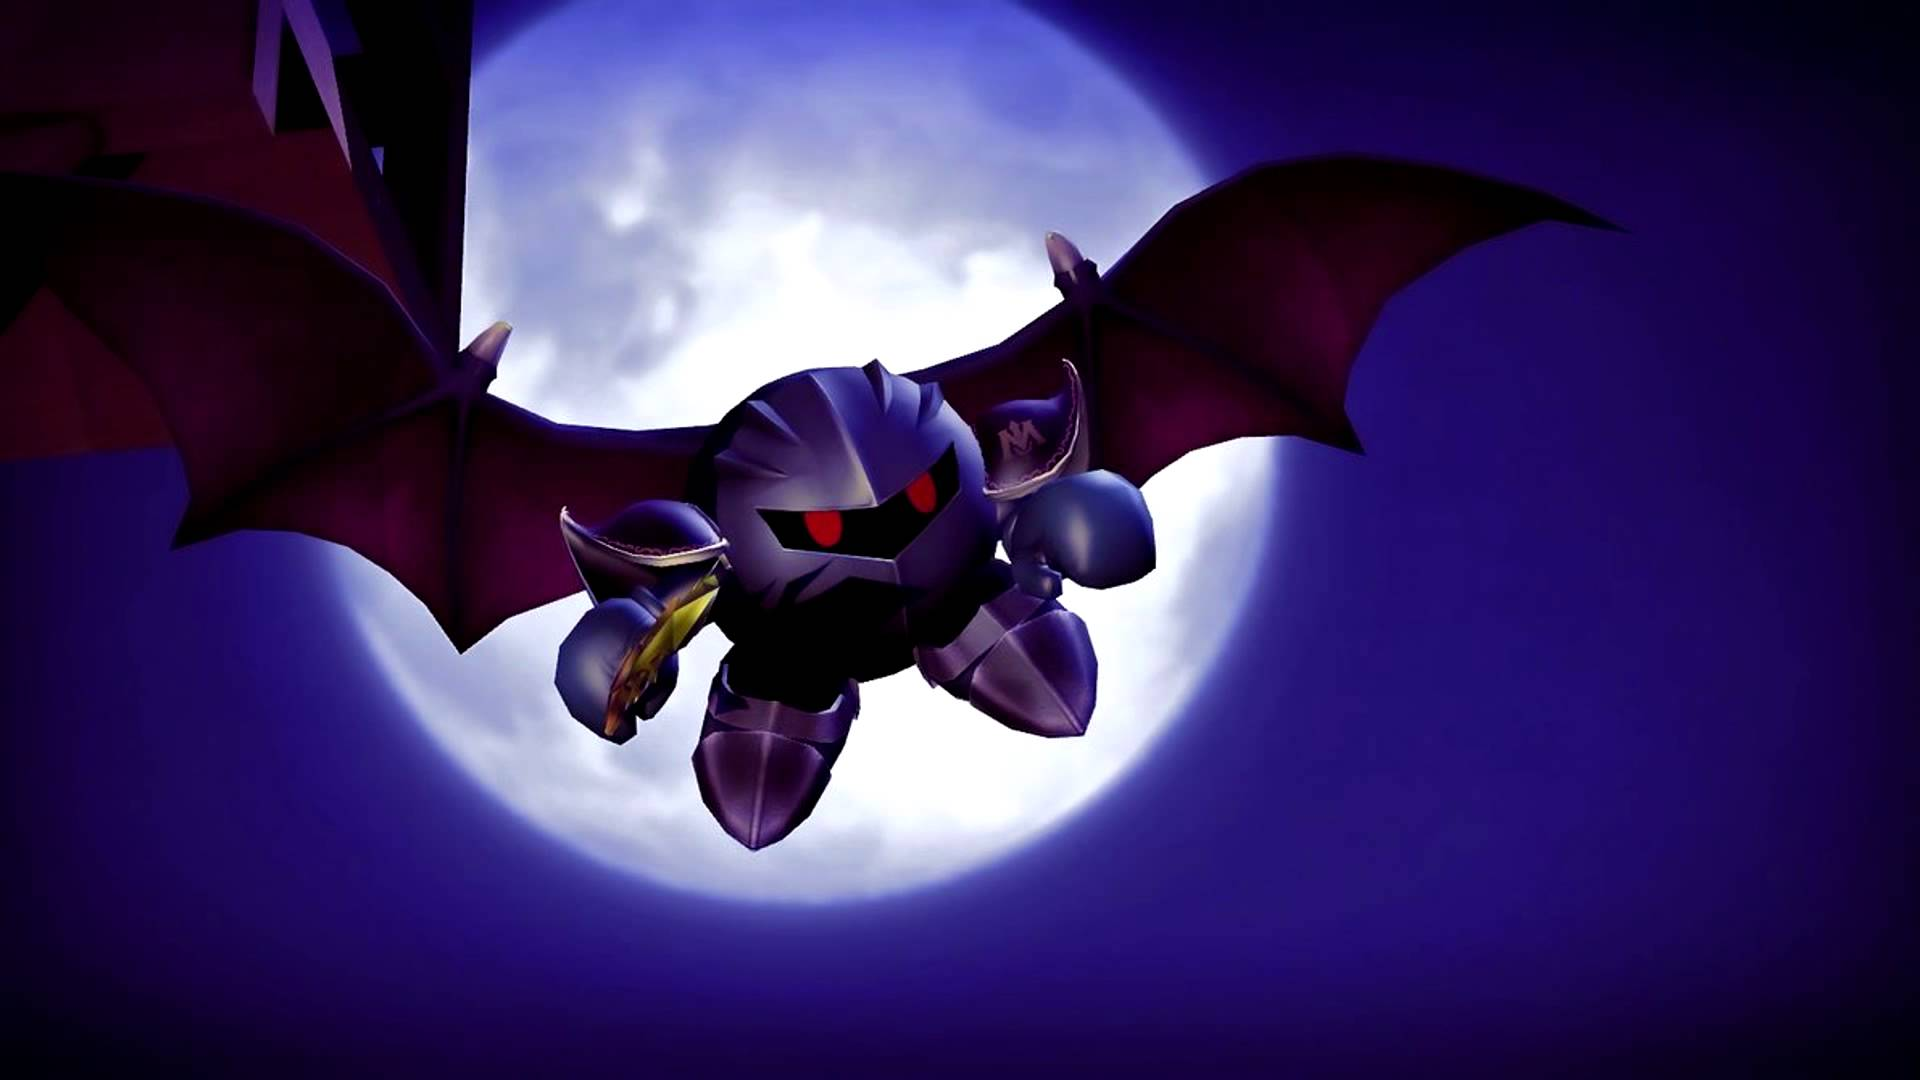 Dark Meta Knight is de nieuwe Dream Friend